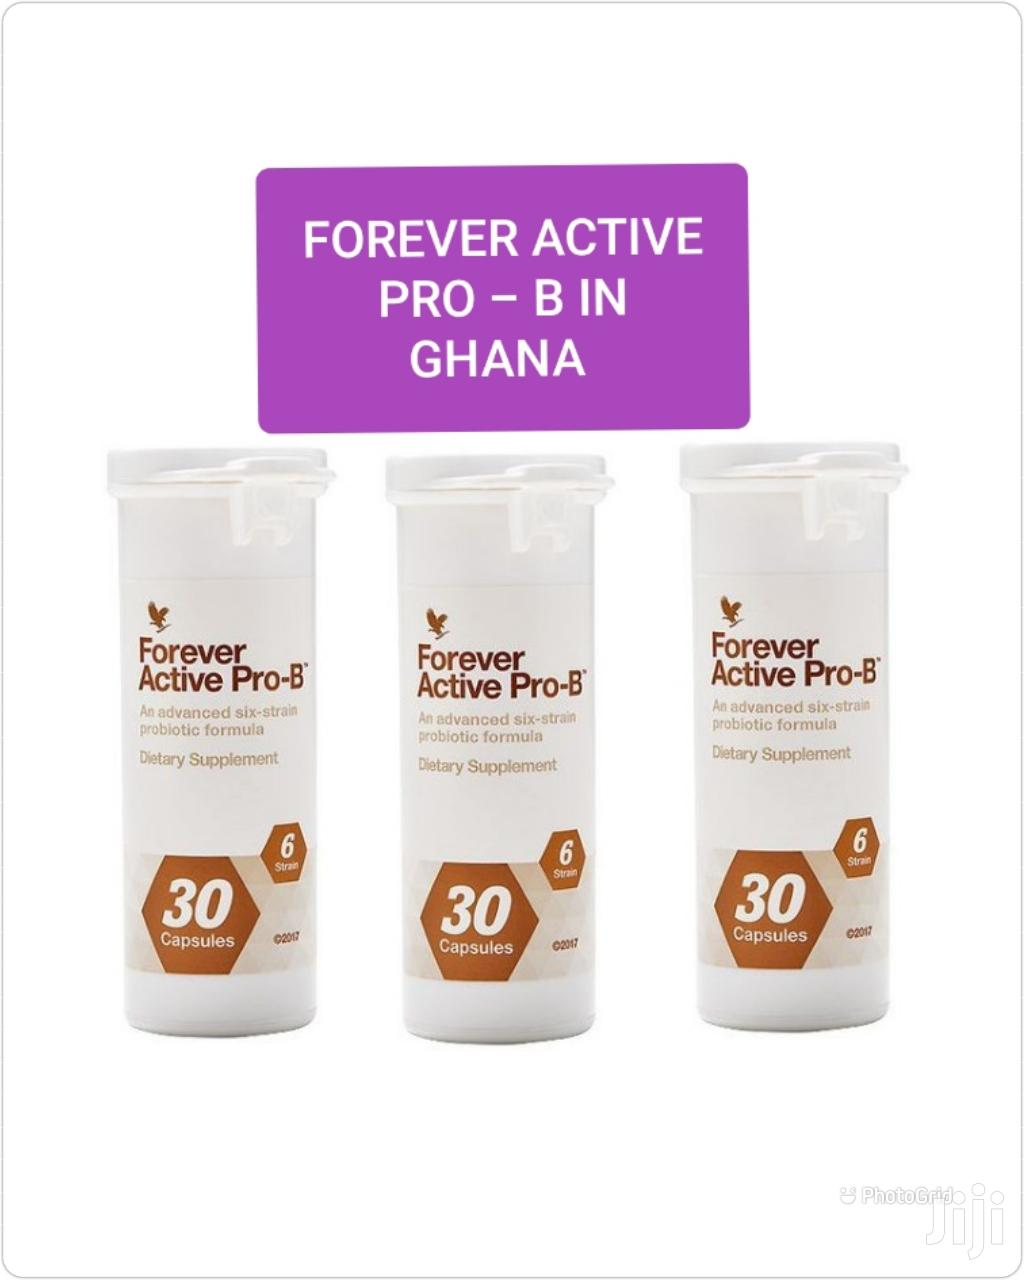 Archive: Forever Active Pro B Price